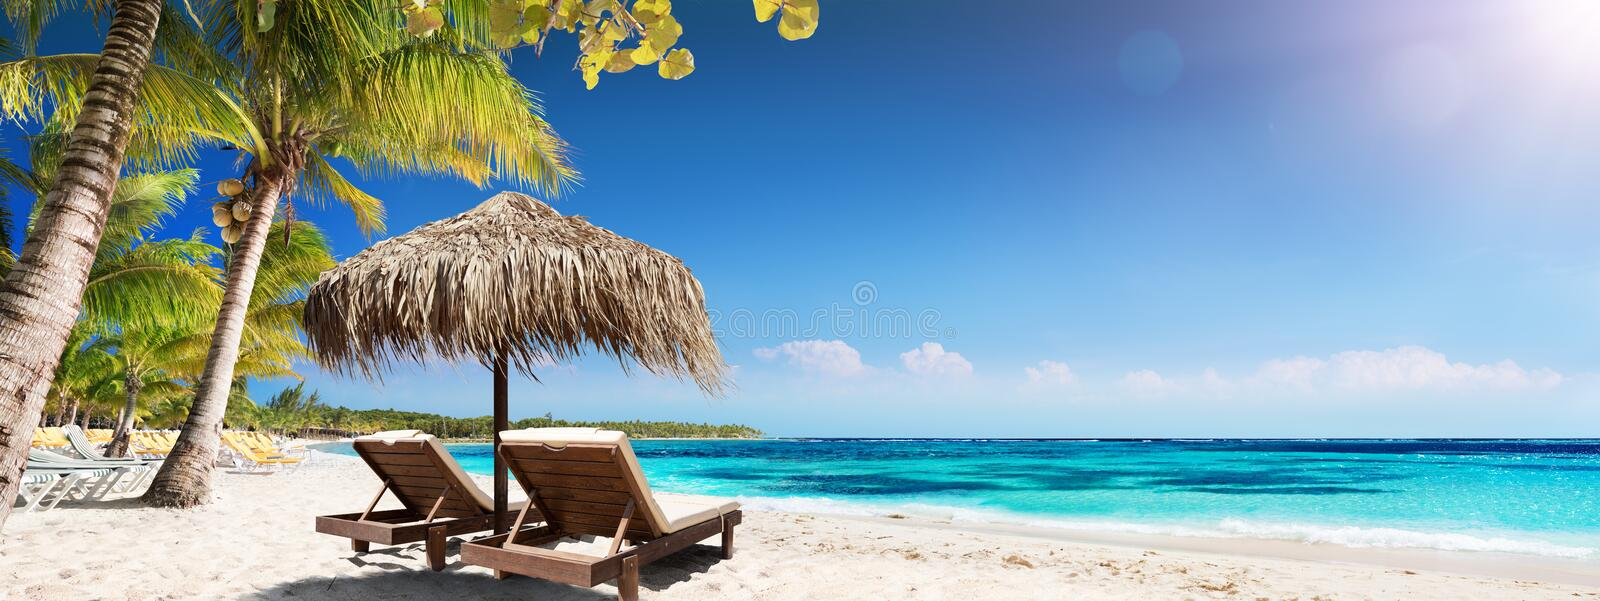 Caribbean Palm Beach With Wooden Chairs And Straw Umbrella royalty free stock photos